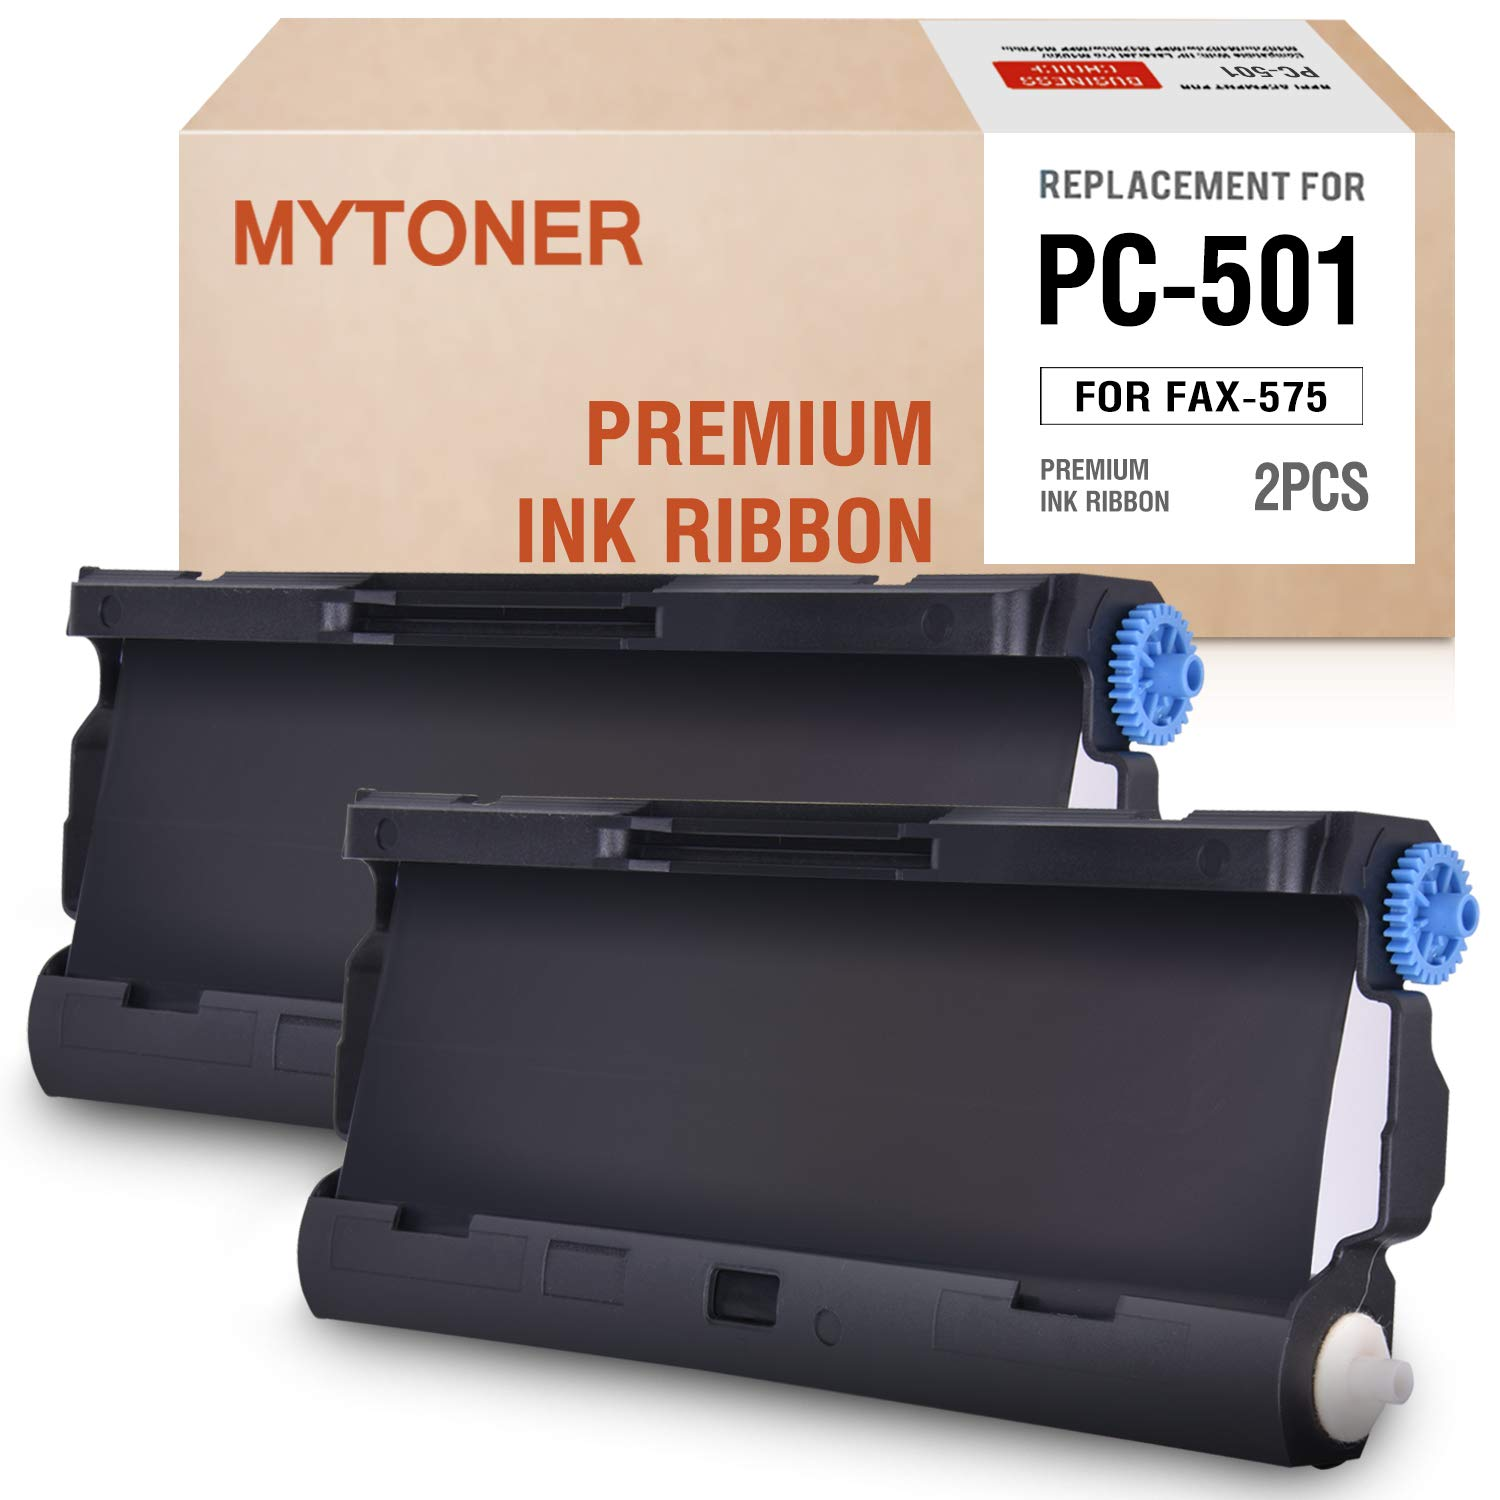 Amazon.com: MYTONER PC501 - Cartuchos de tinta para ...